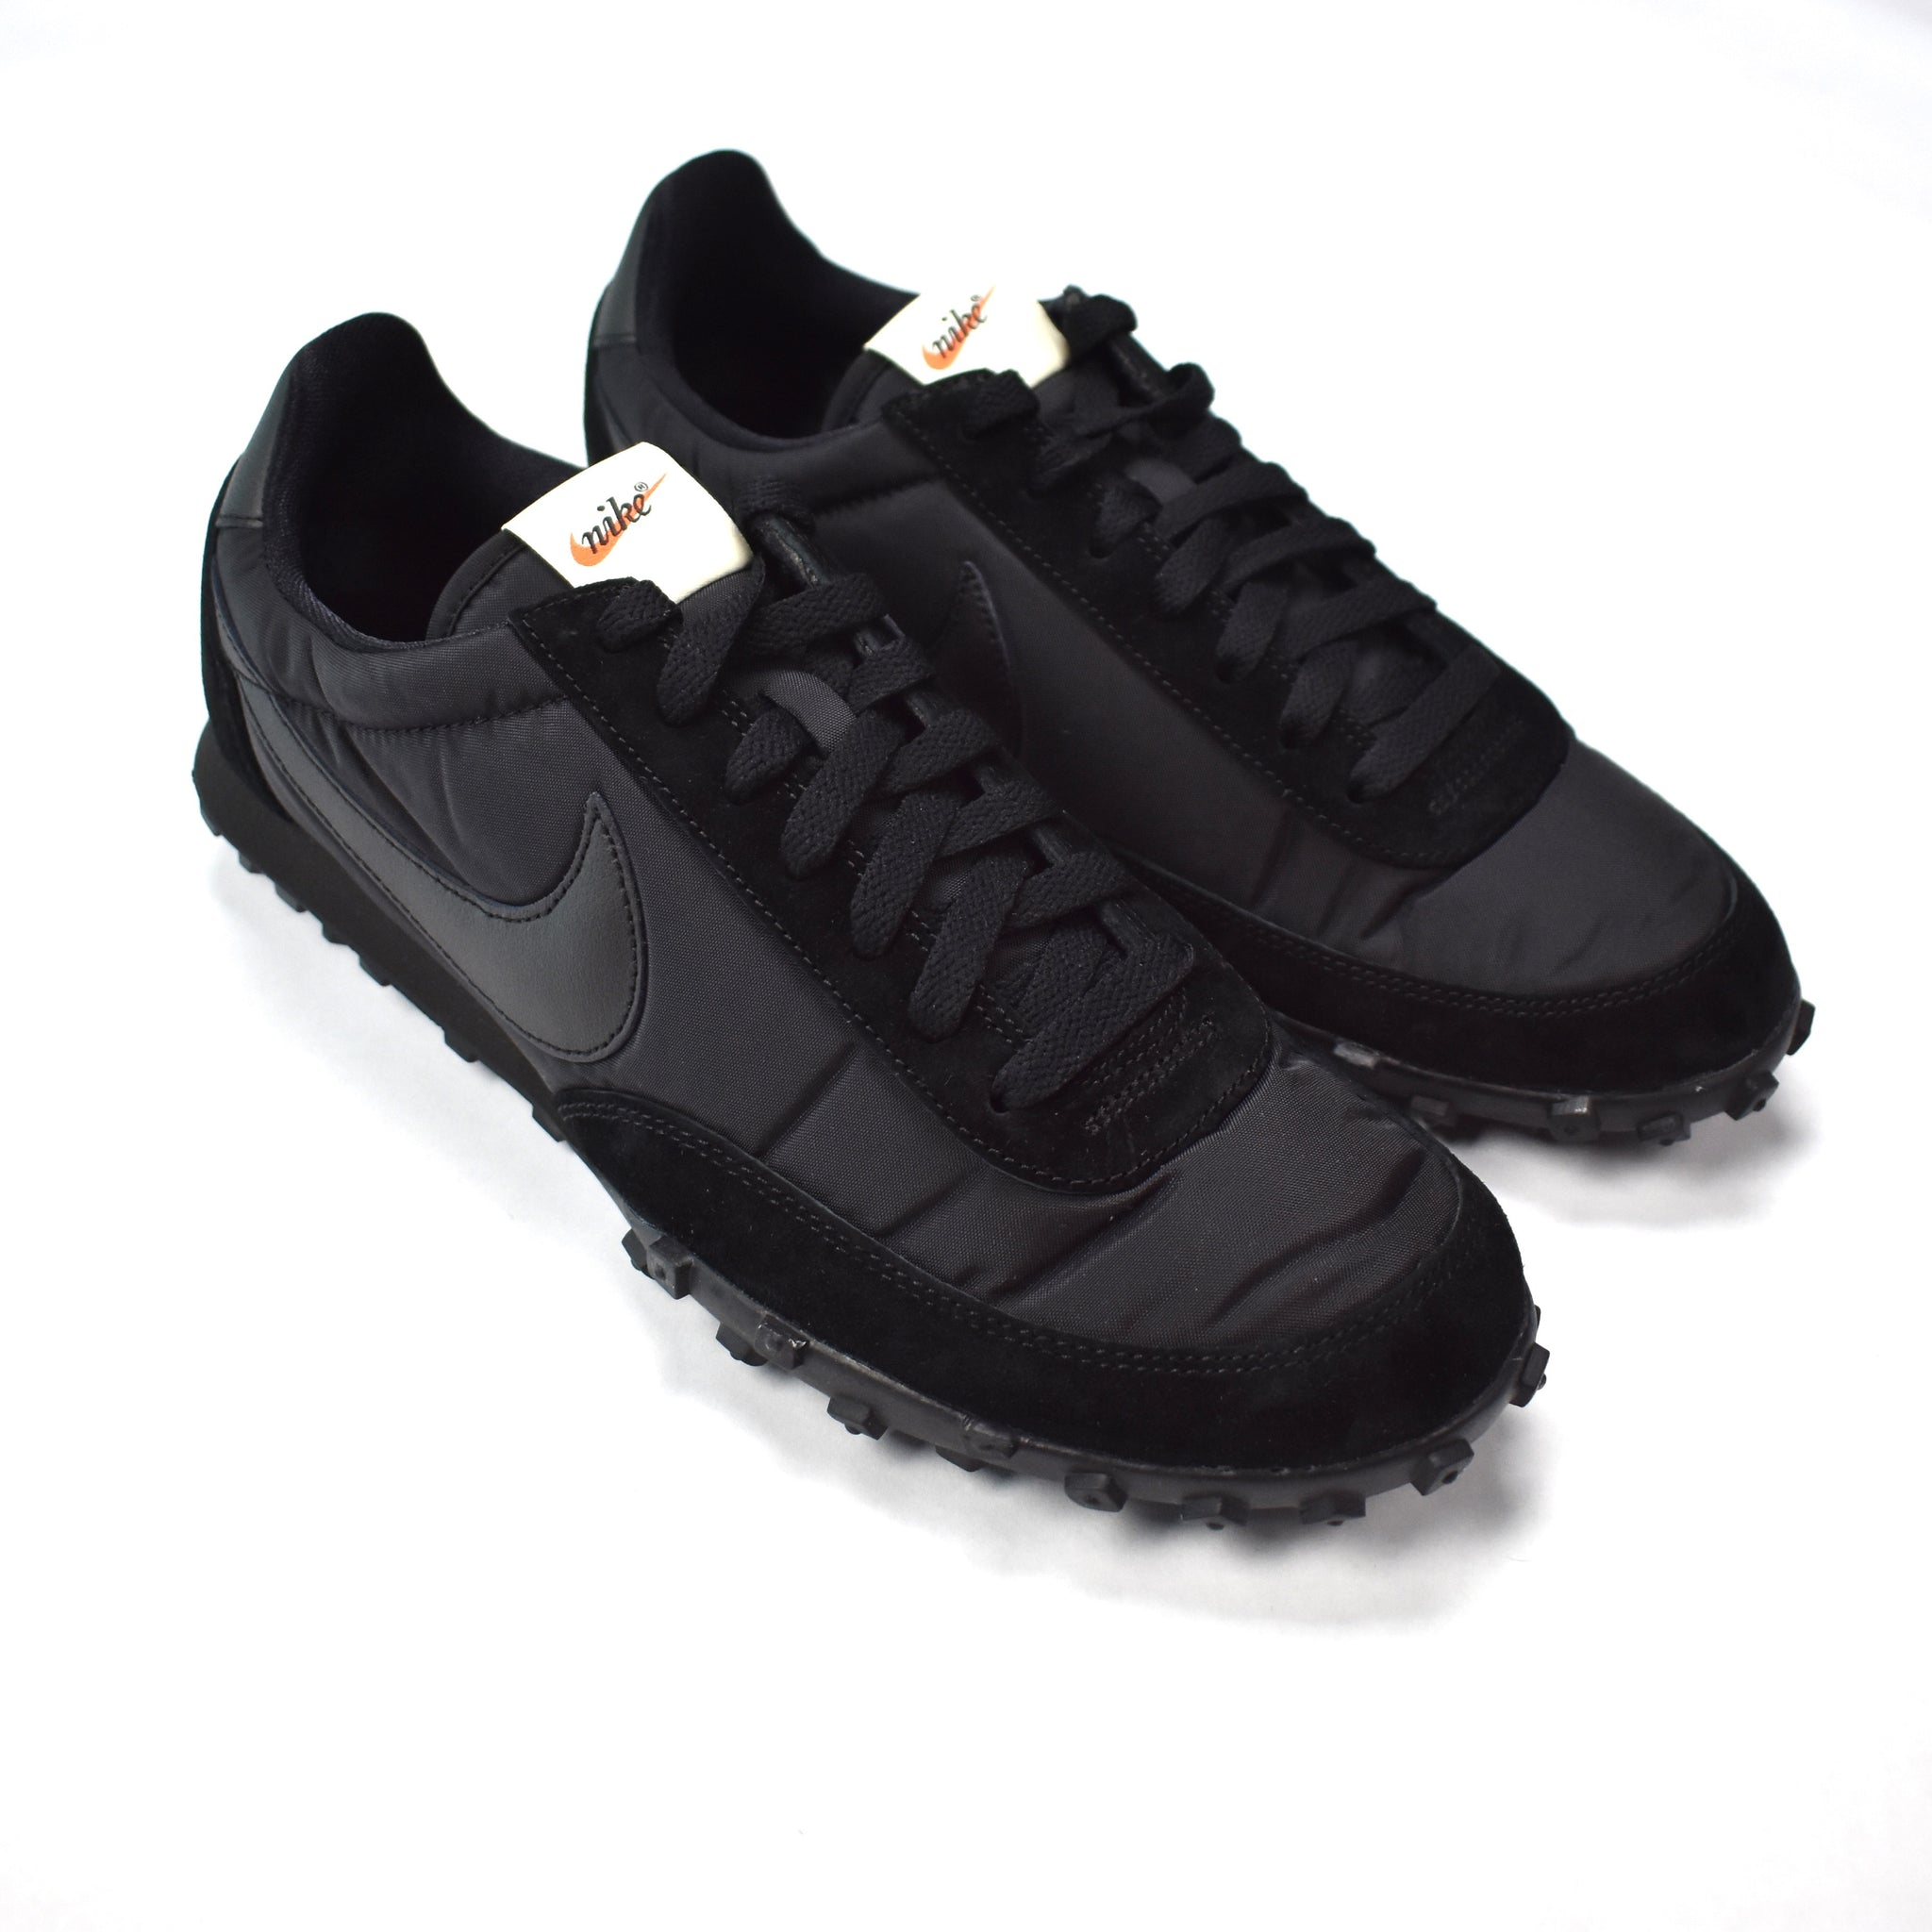 sports shoes 717a6 97b5b ... Comme des Garcons x Nike - Waffle Racer  17 ...